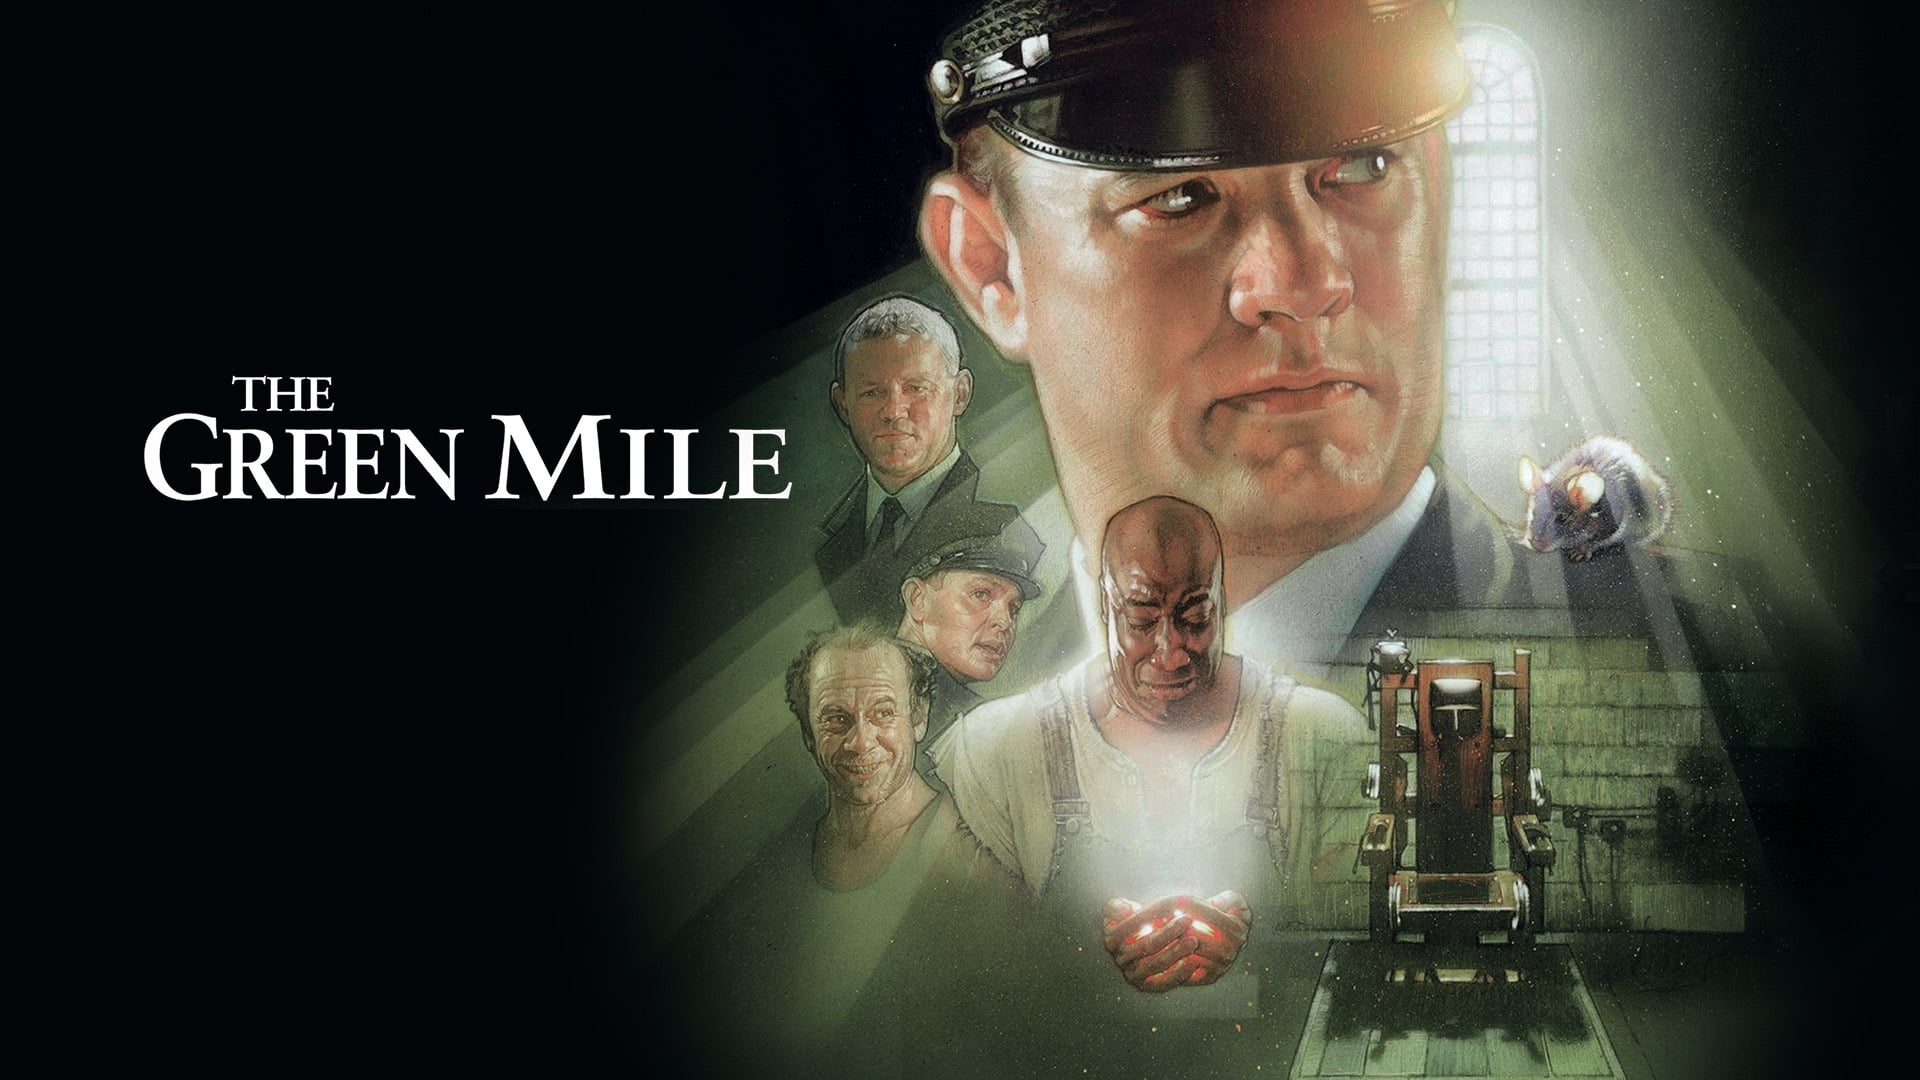 Watch The Green Mile (1999) Full Movie Online Free | Stream Free Movies & TV Shows